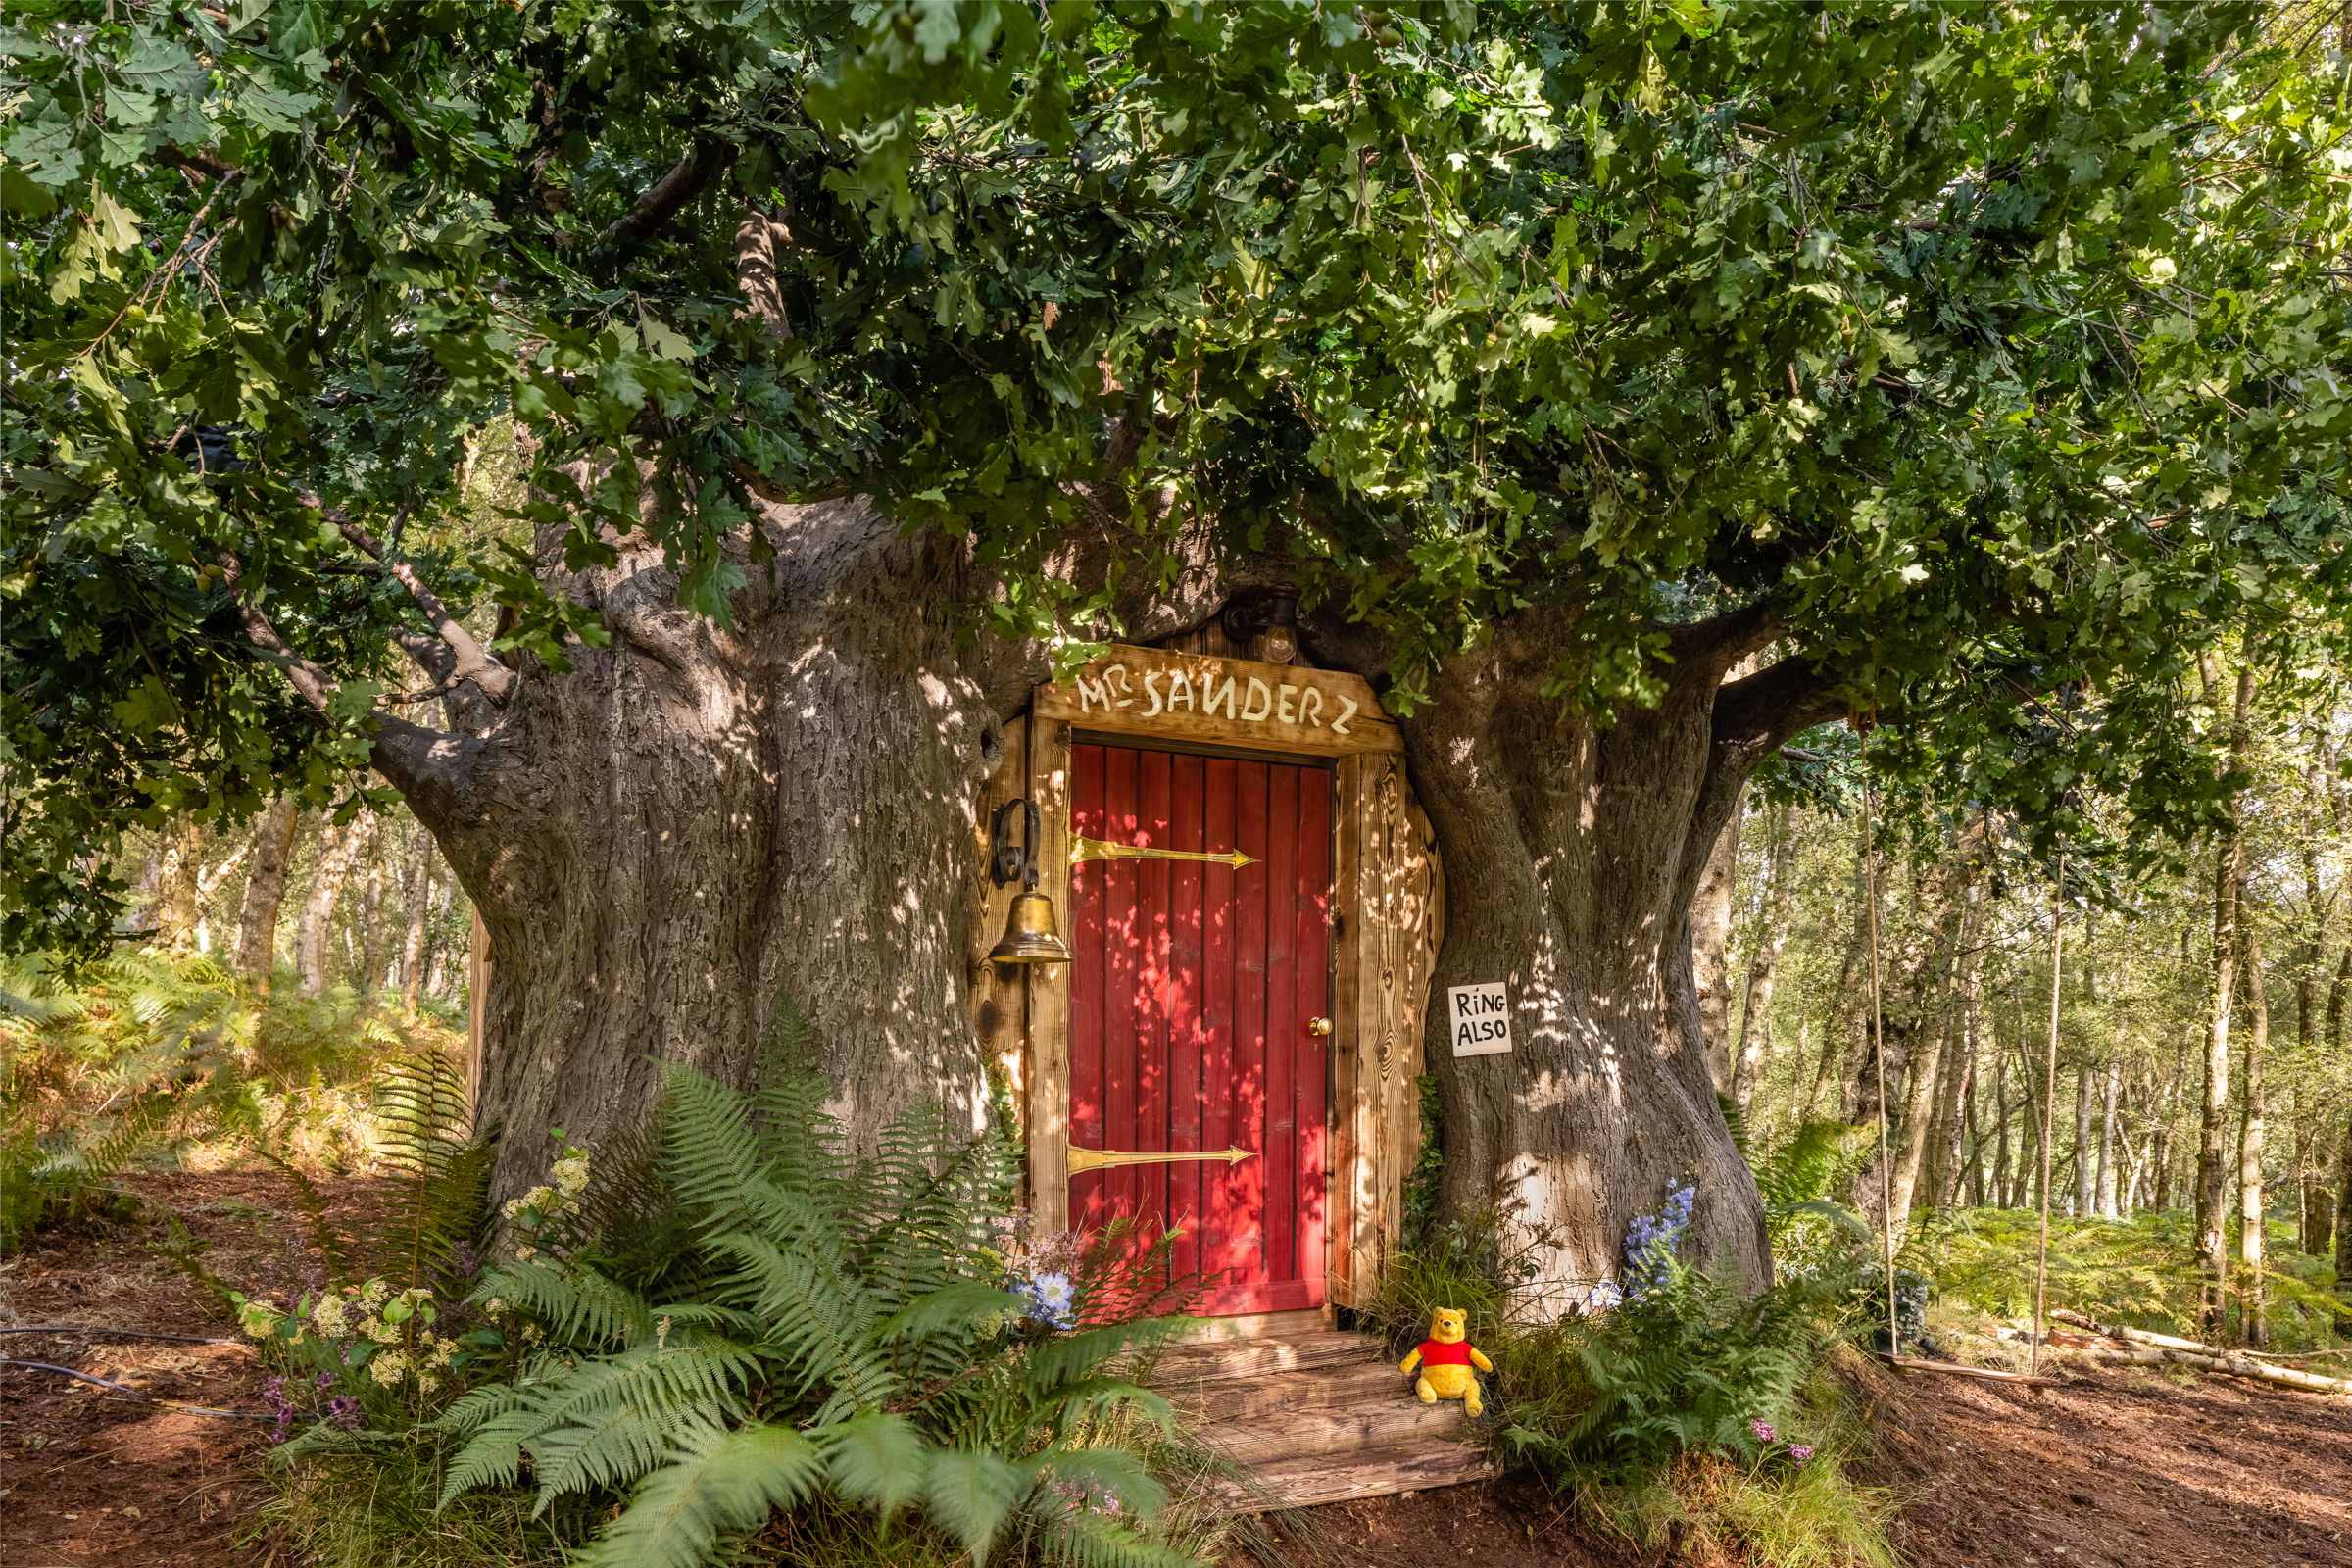 Disney inspired Winnie the Pooh house in the Original Hundred Acre Wood lists on Airbnb